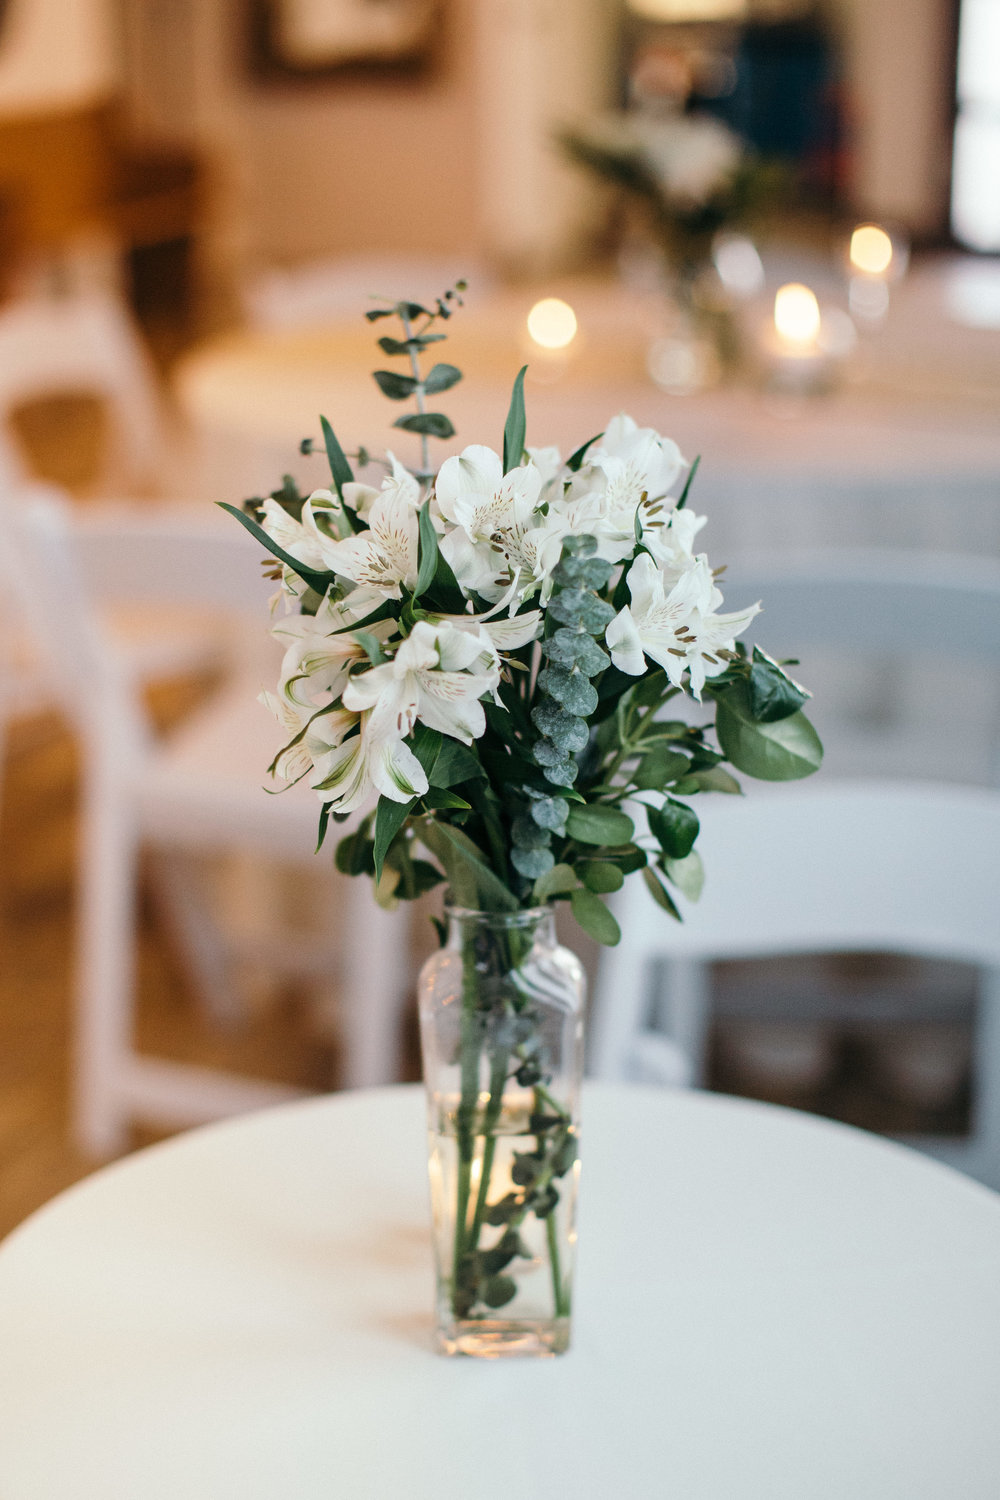 Greenery and White Floral Centerpieces Chicago Wedding Dorey Kronick